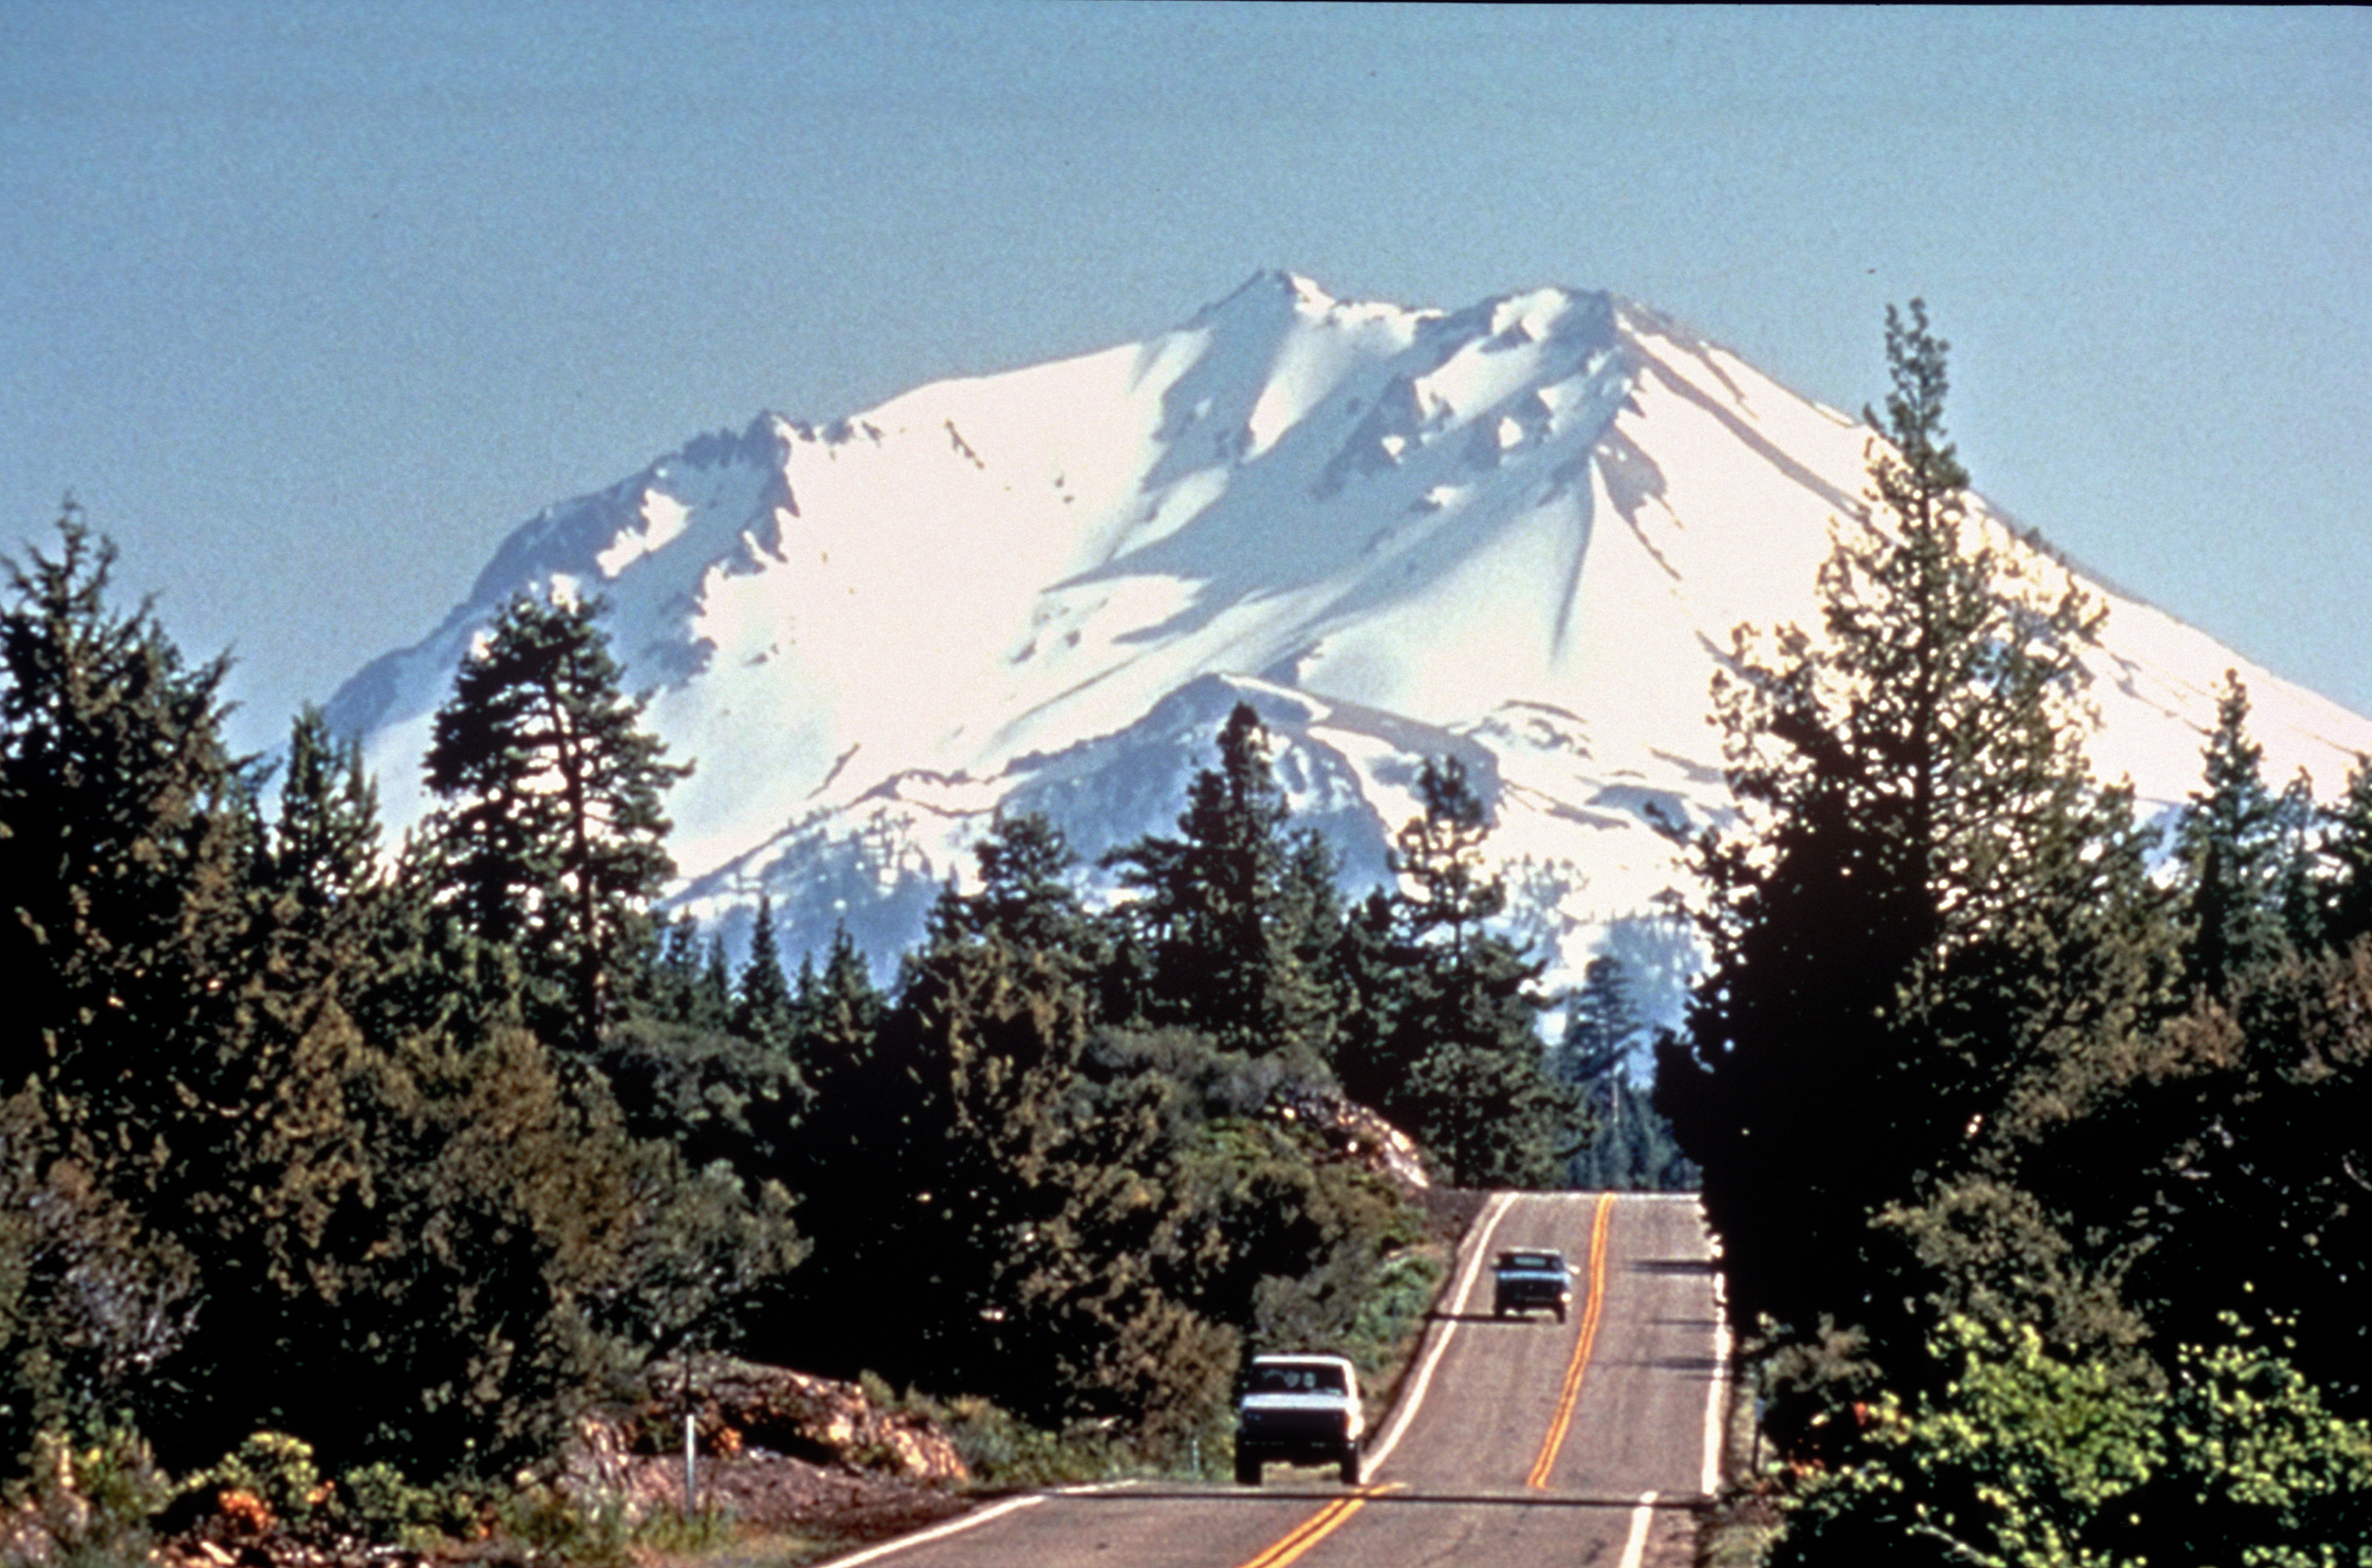 The beautiful Volcanic Legacy Scenic Byway runs through McCloud.